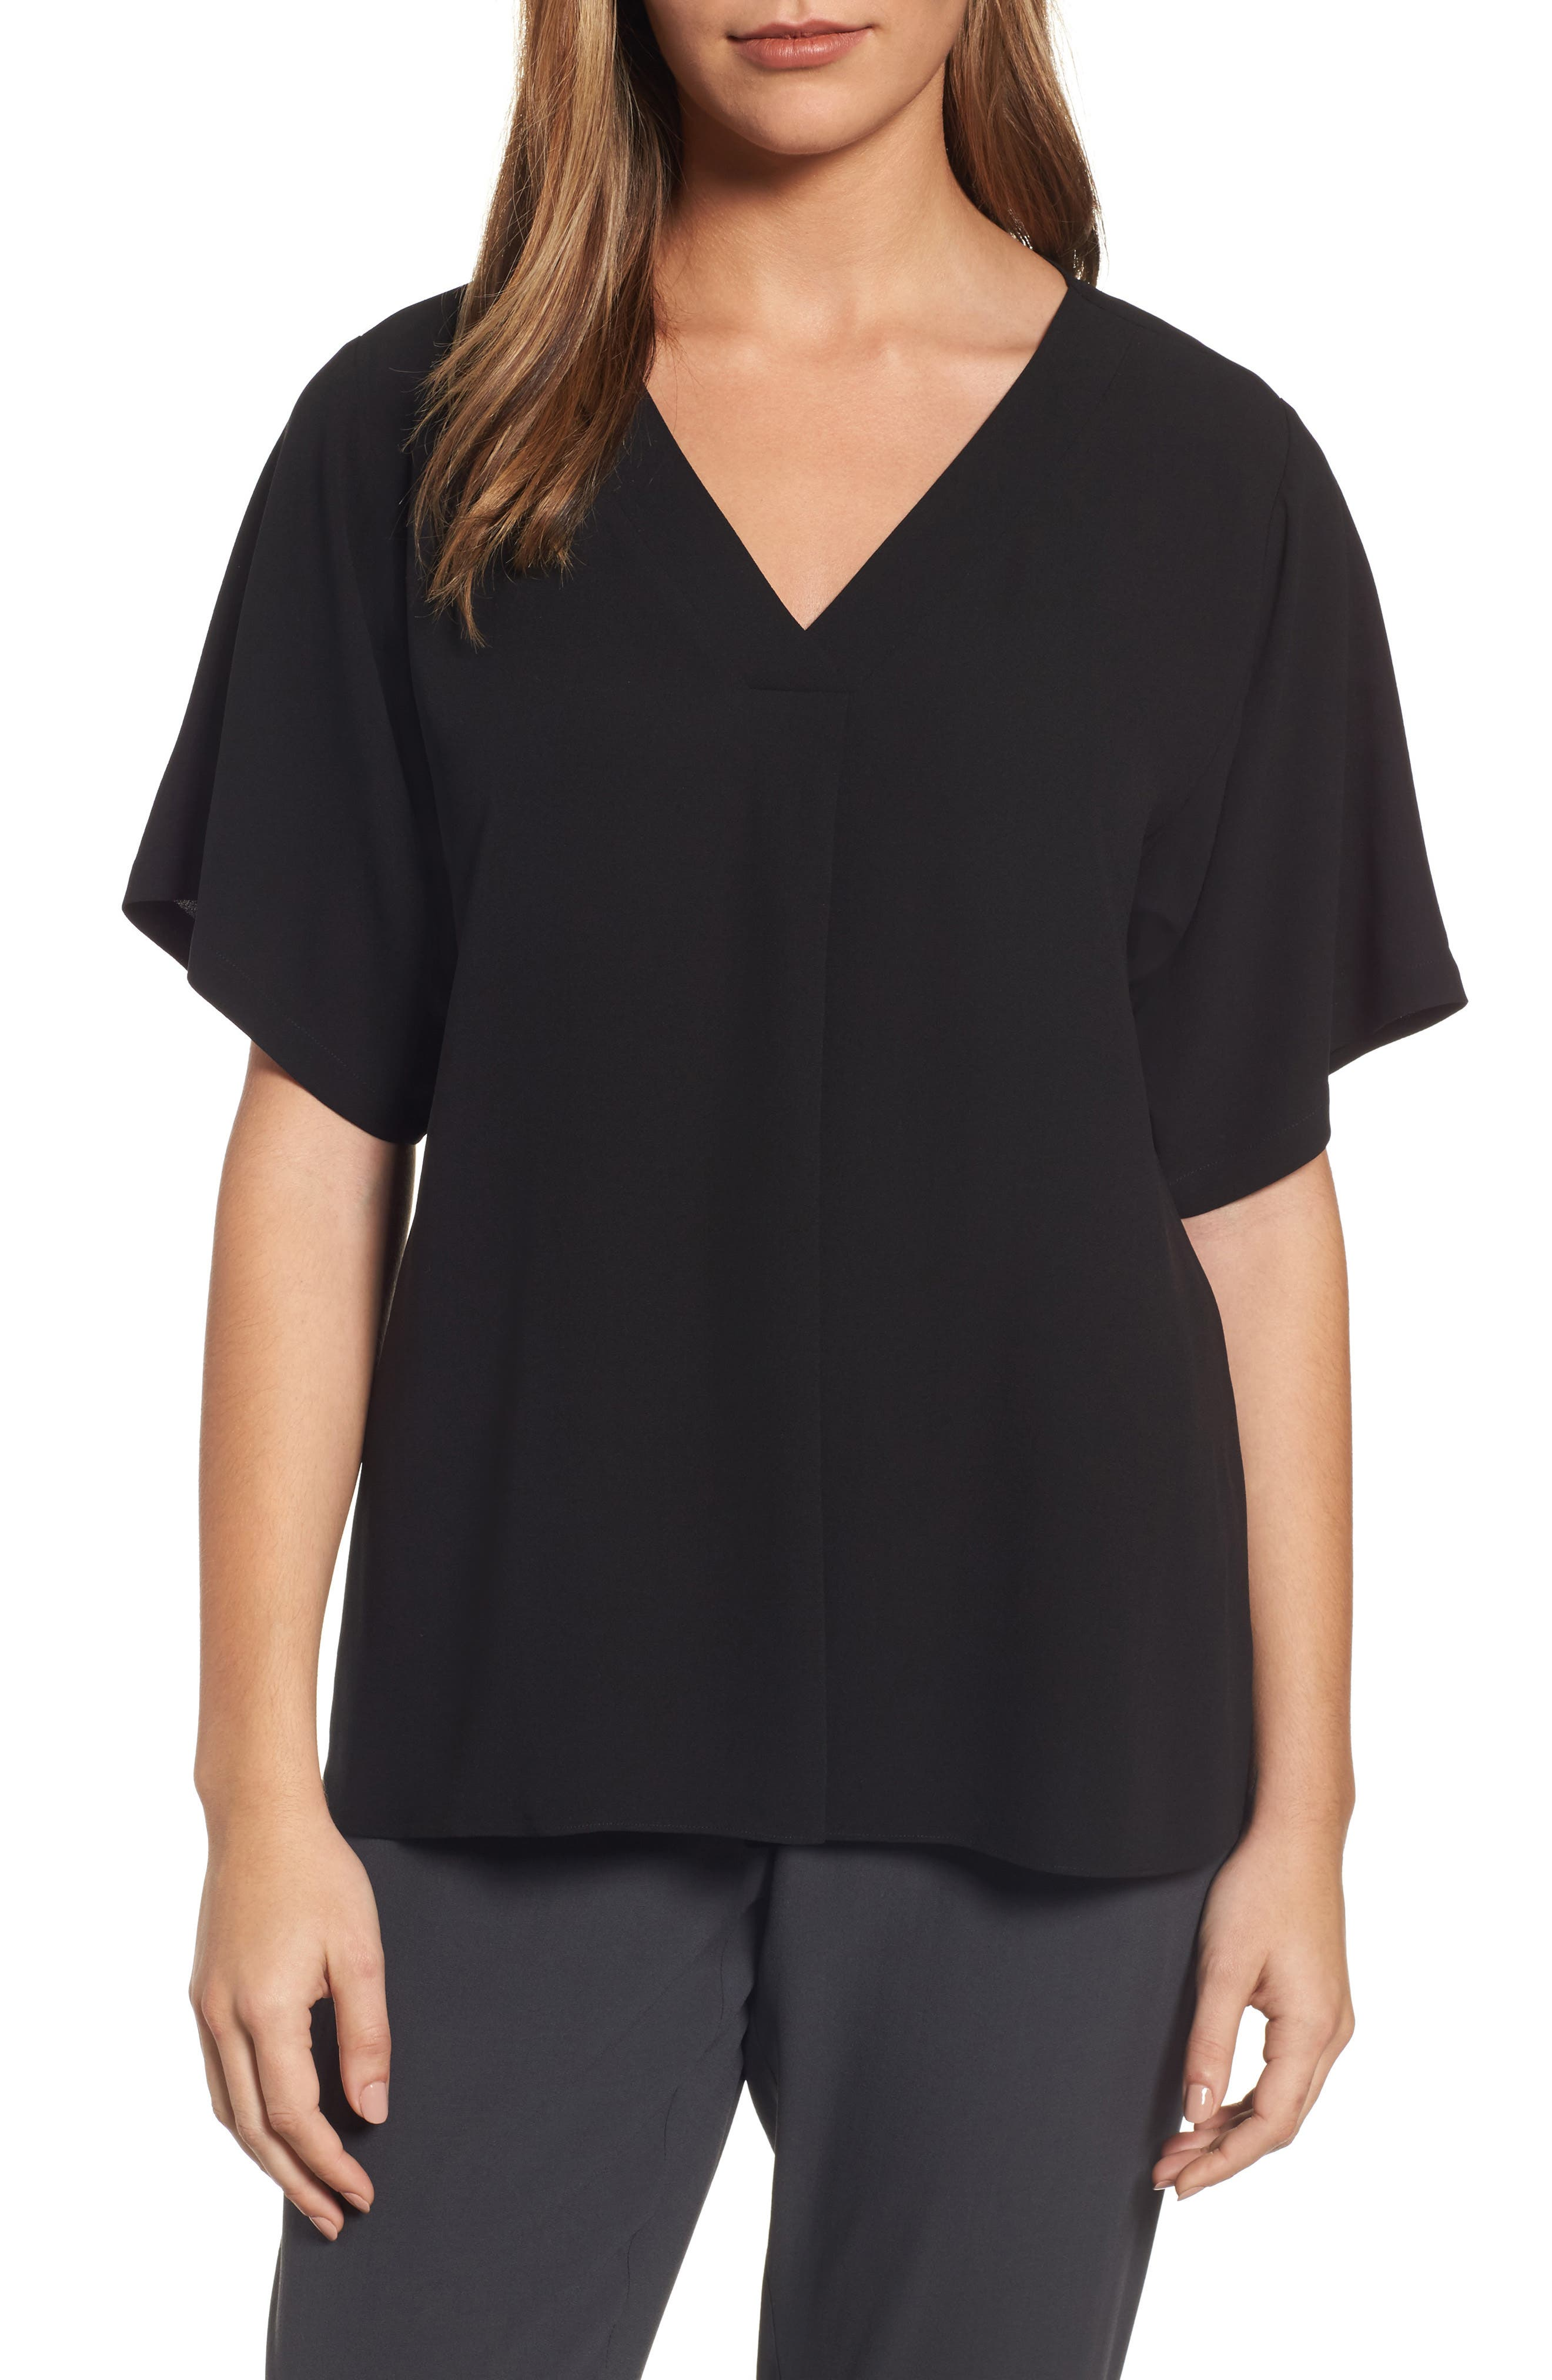 Alternate Image 1 Selected - Eileen Fisher Silk V-Neck Top (Regular & Petite)